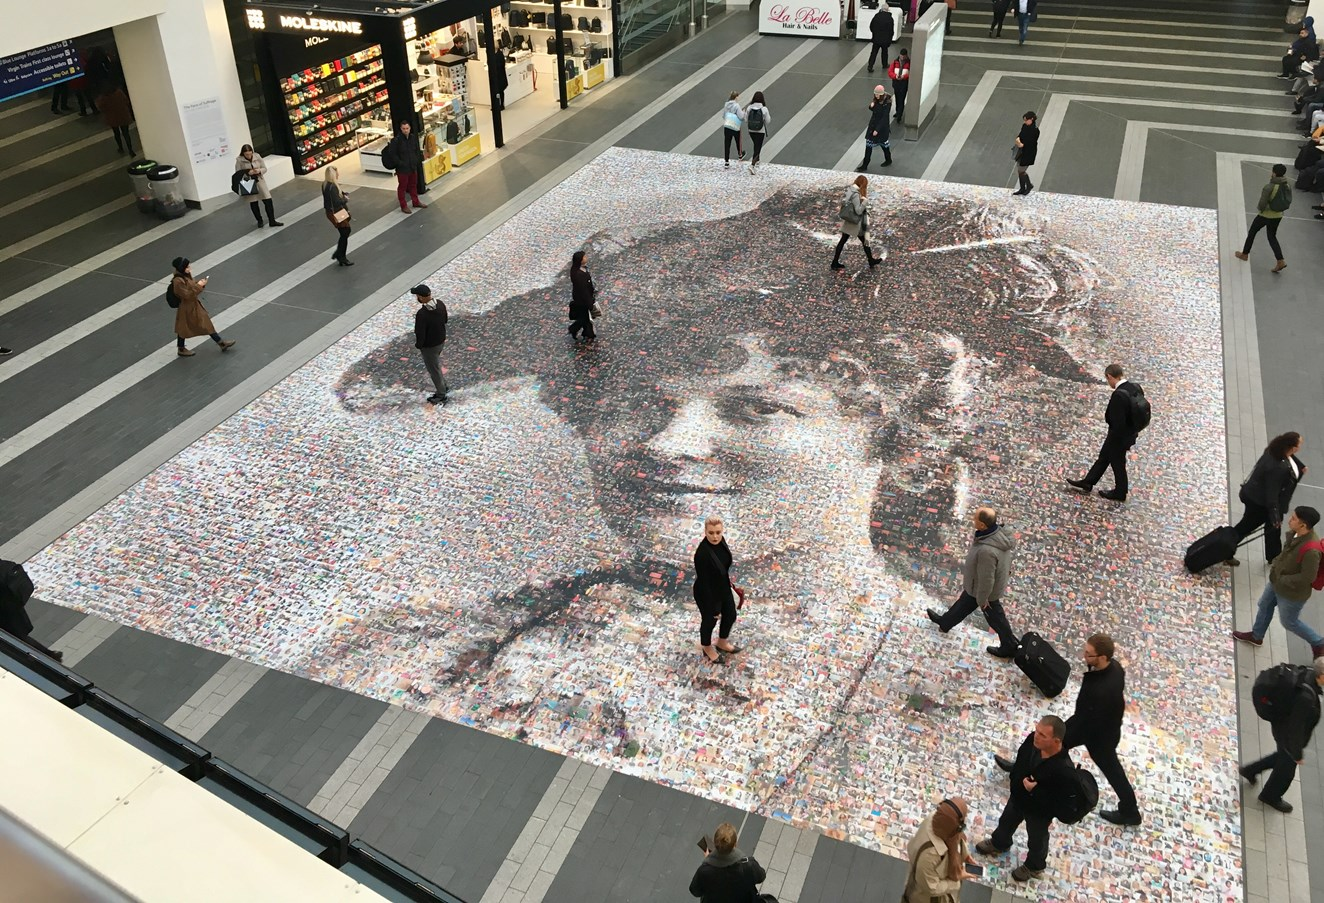 Last chance to see hugely popular 'Face of Suffrage' photo mosaic at Birmingham New Street: Face of Suffrage artwork on launch day November 15